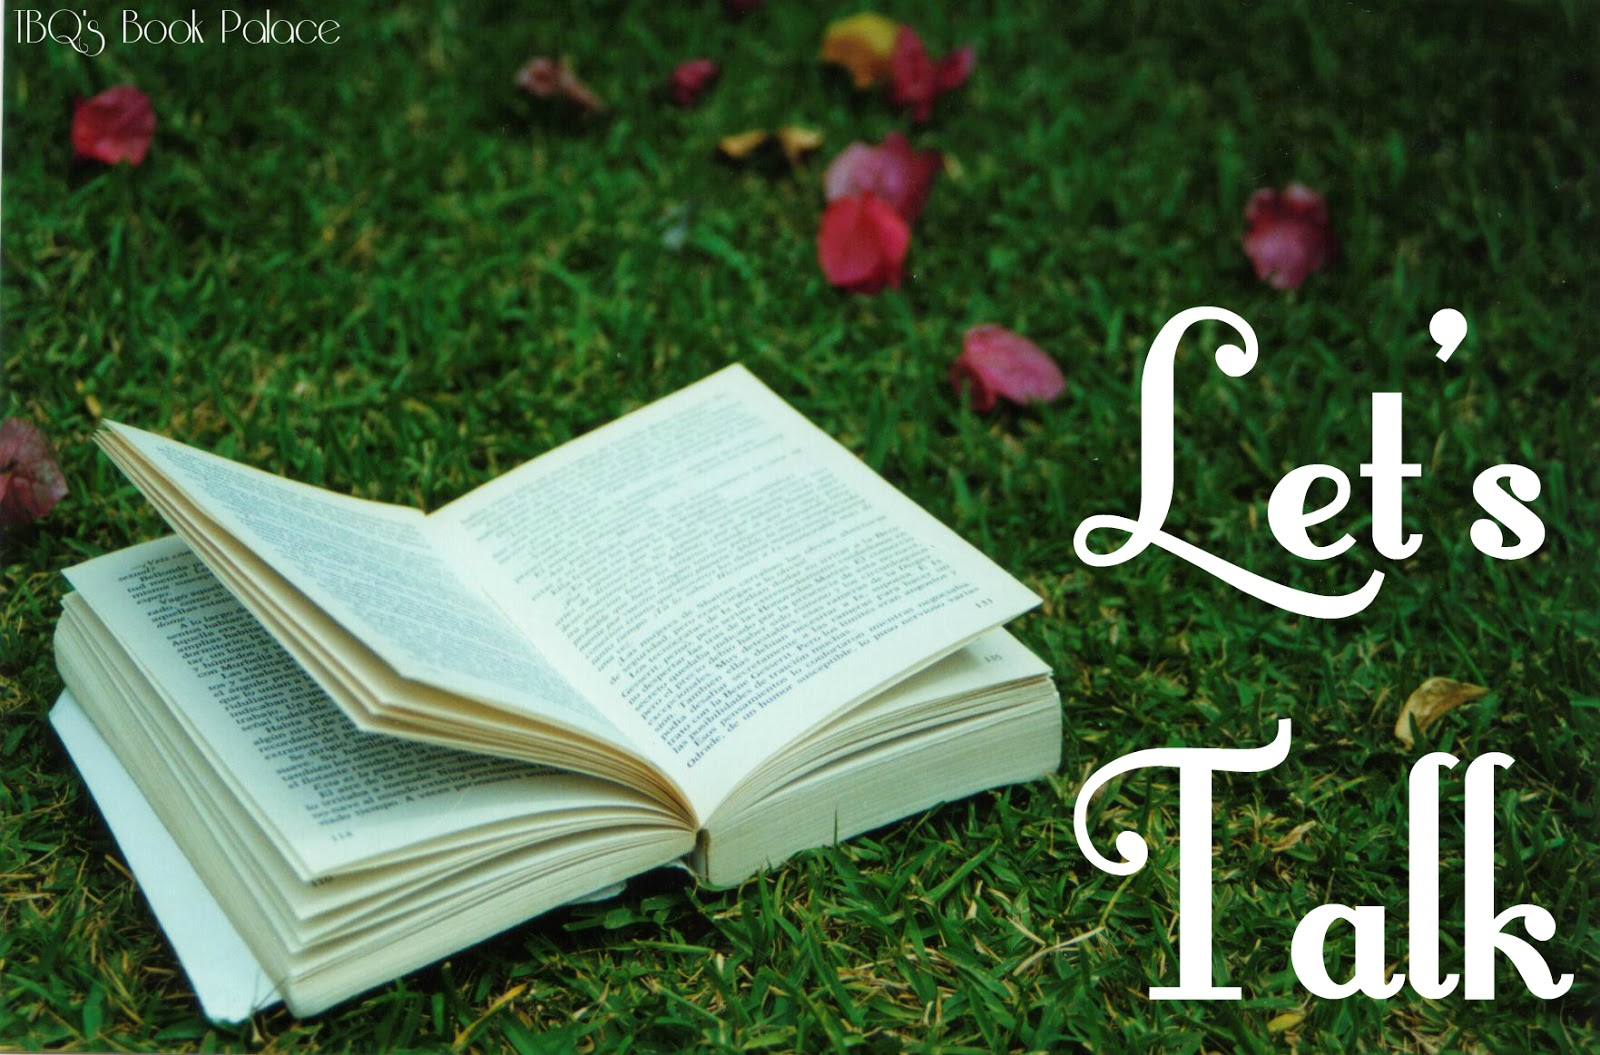 TBQ'S Book Palace: Let's Talk: Miscarriages in Romance